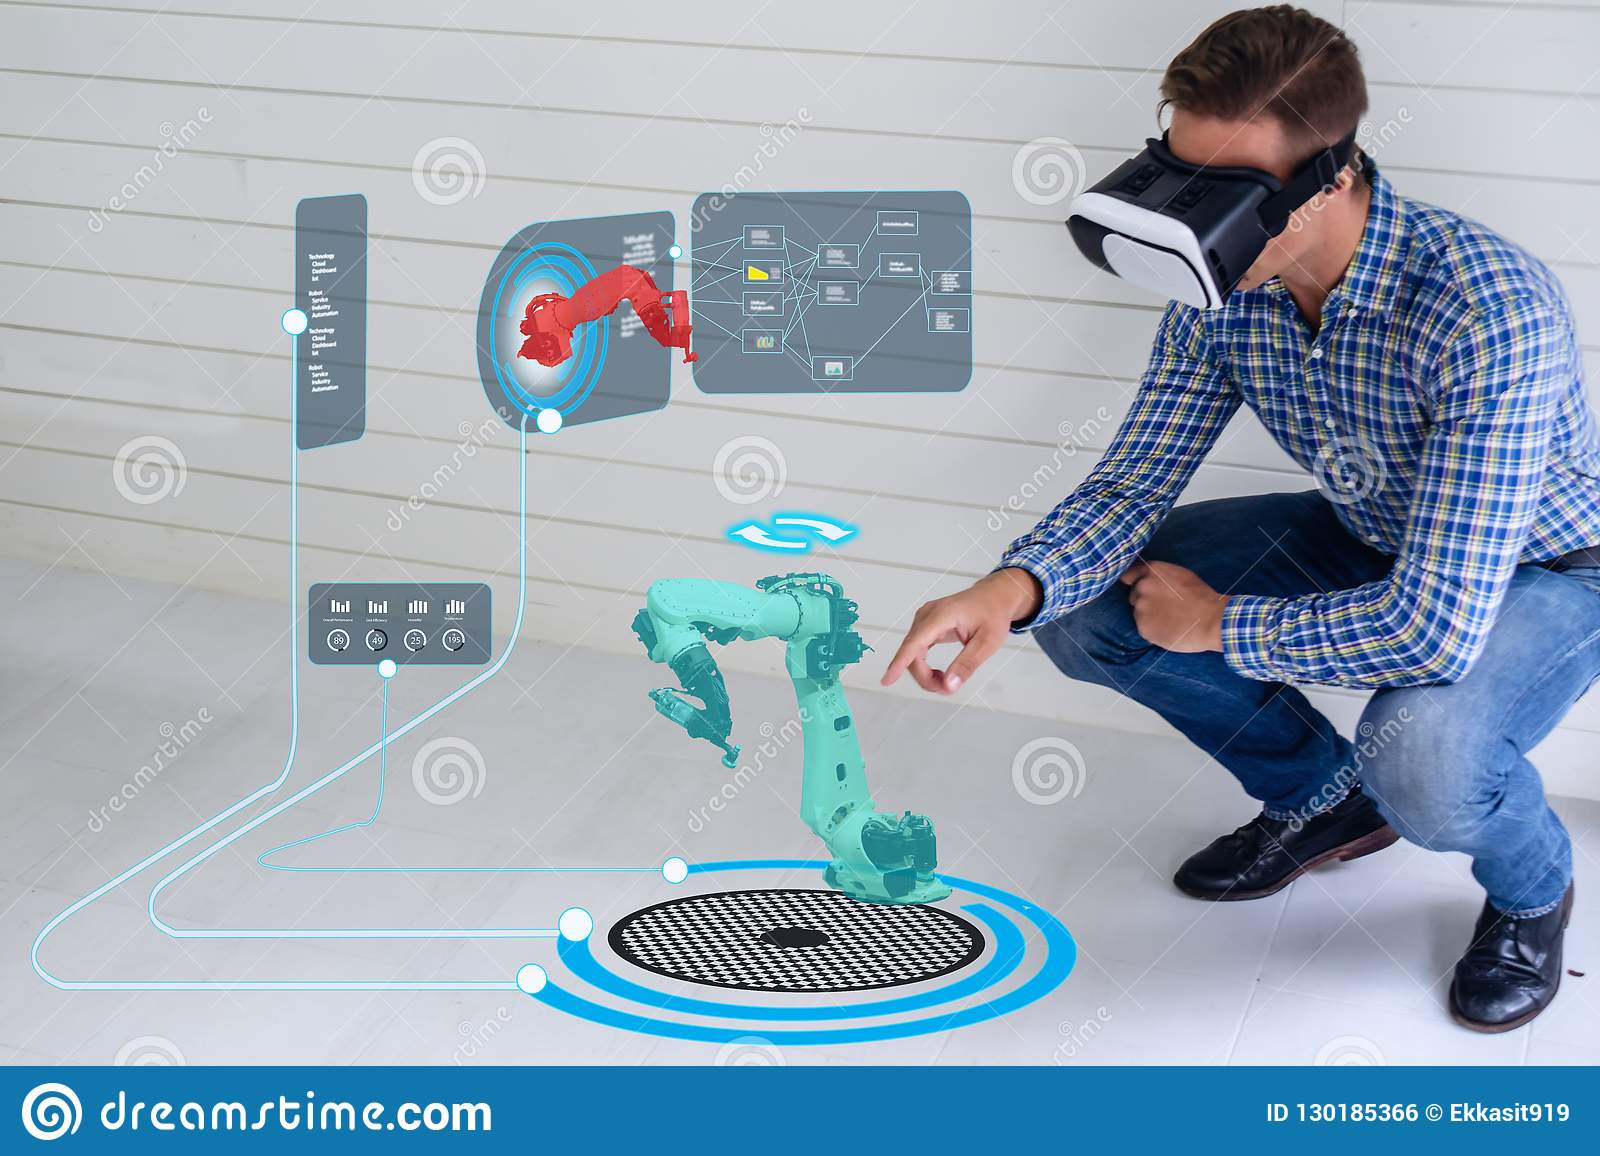 Iot smart technology futuristic in industry 4.0 concept, engineer use augmented mixed virtual reality to education and training, r